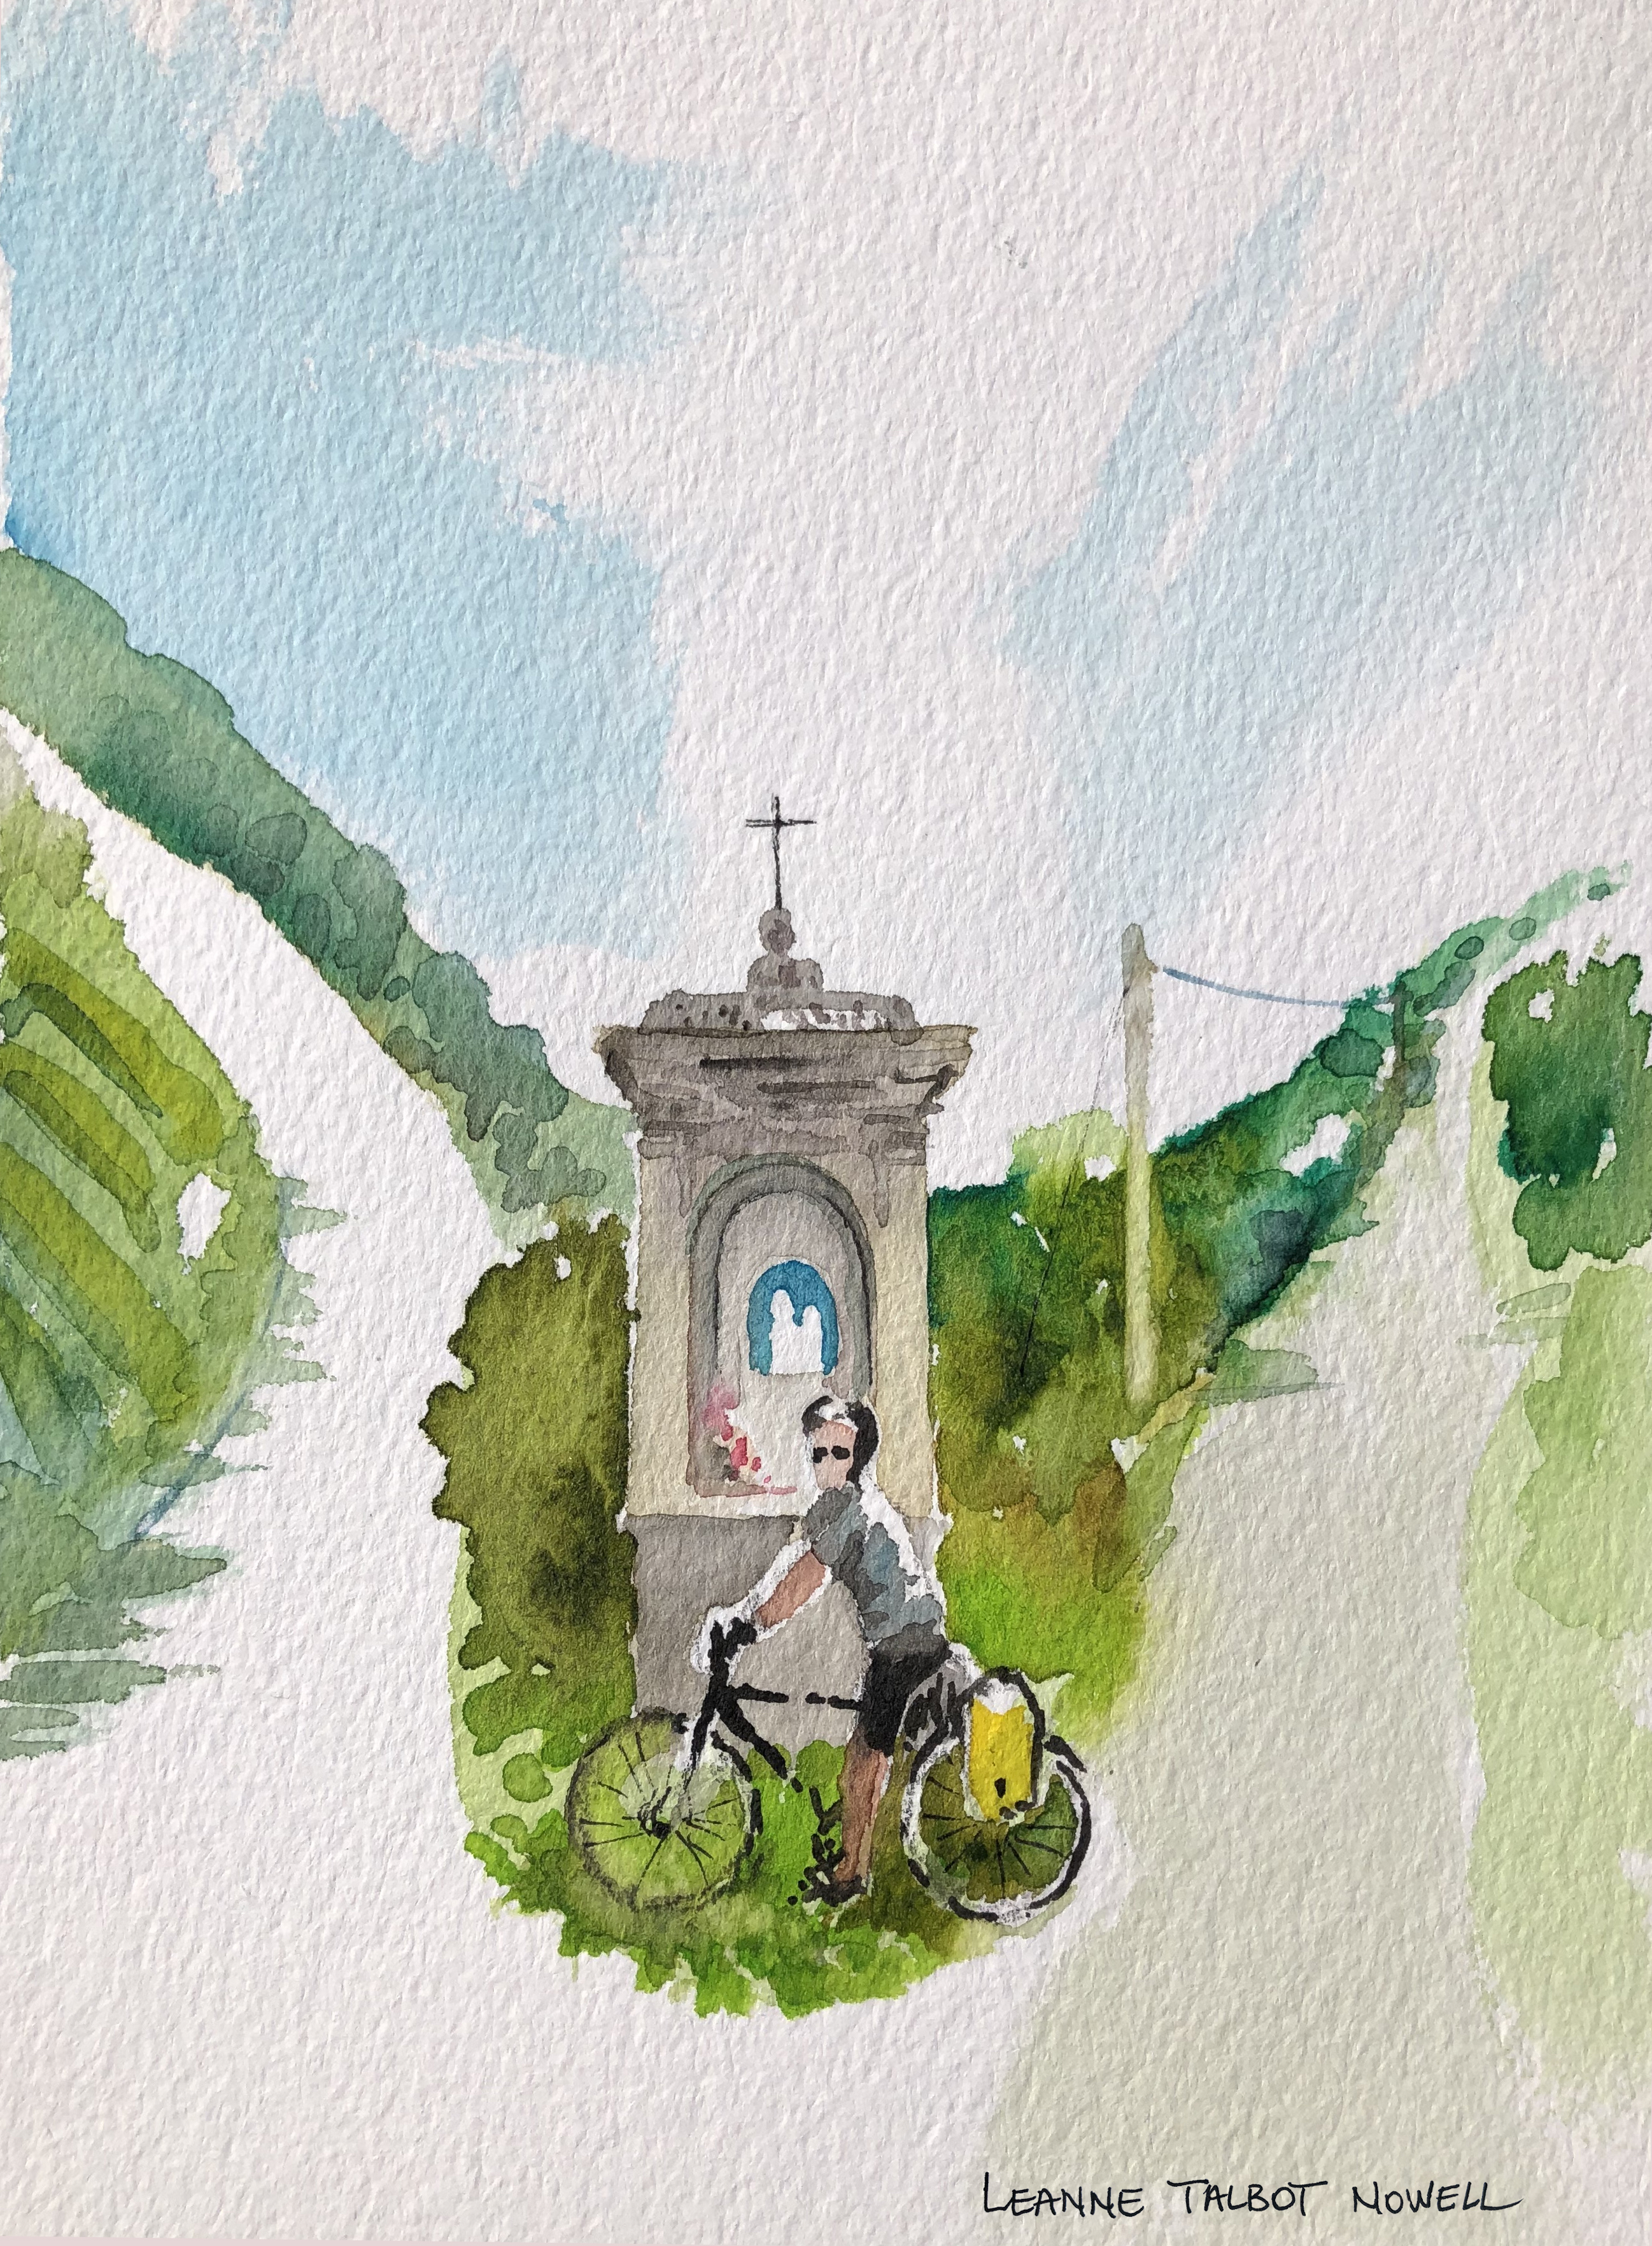 Day 7 Simon at a shrine, watercolour painting by Leanne Talbot Nowell